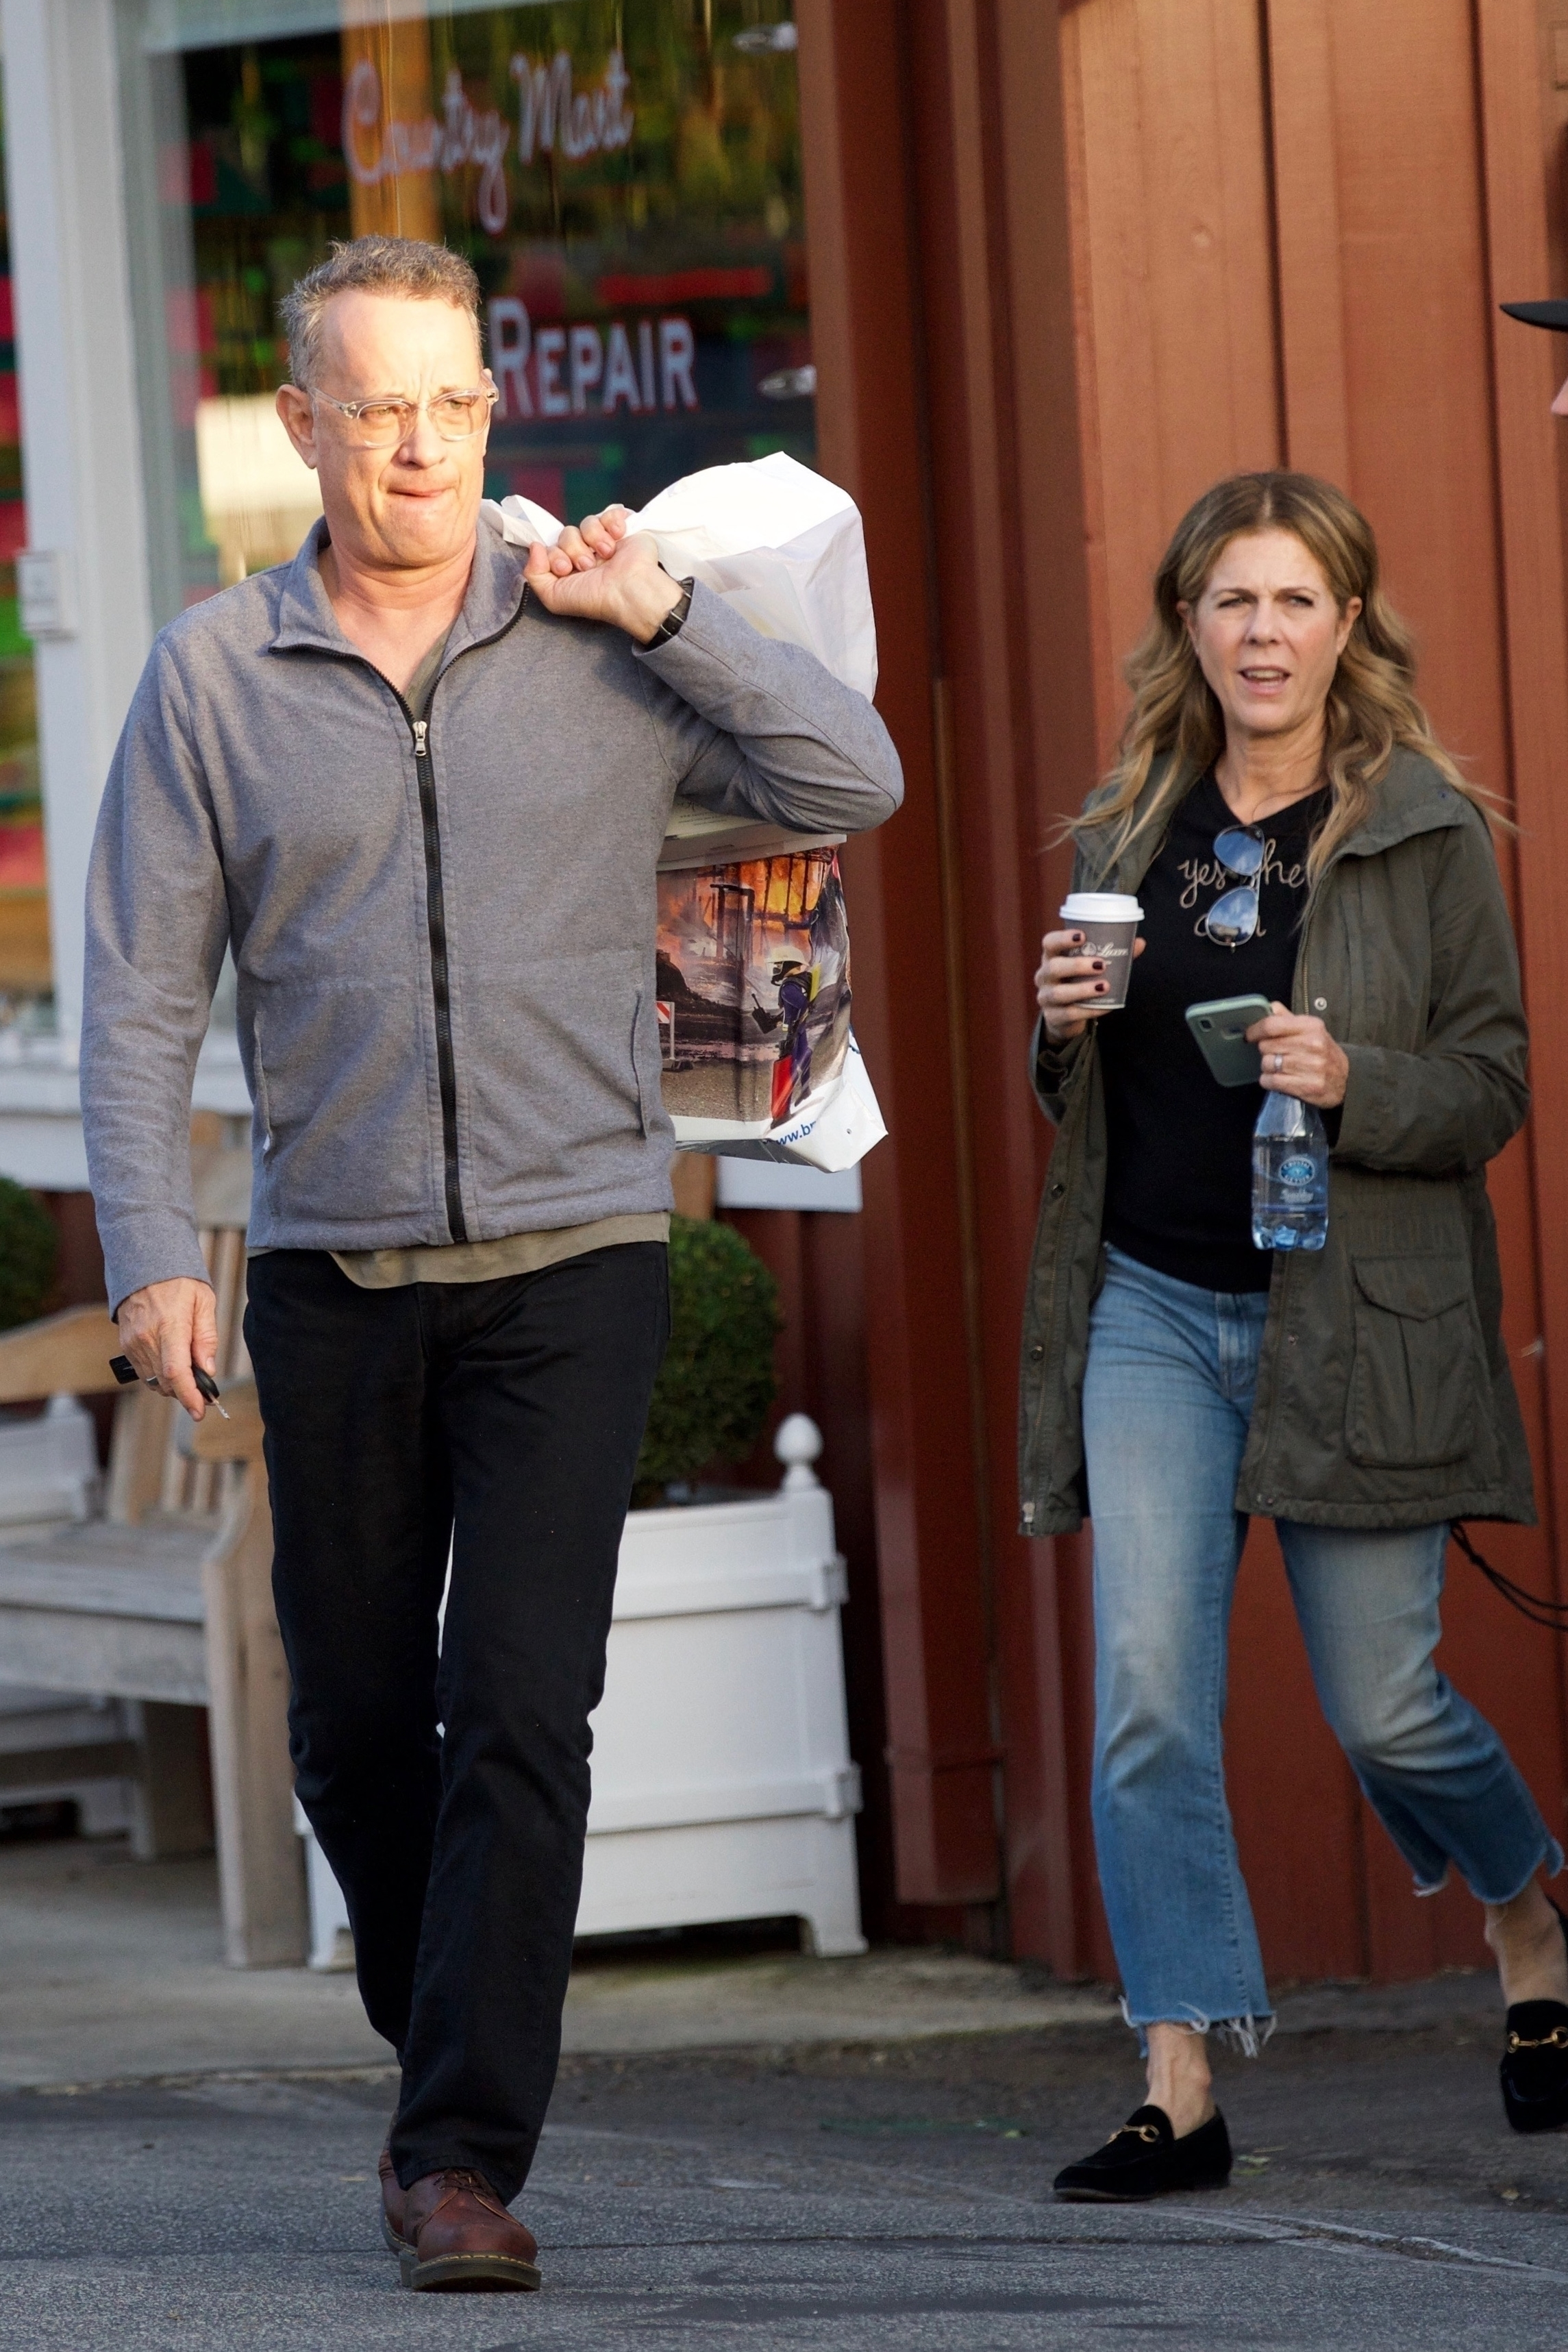 Tom Hanks was spotted Christmas shopping with his wife Rita Wilson and their son Truman in preparation for the holidays on Los Angeles on Dec. 16, 2018.